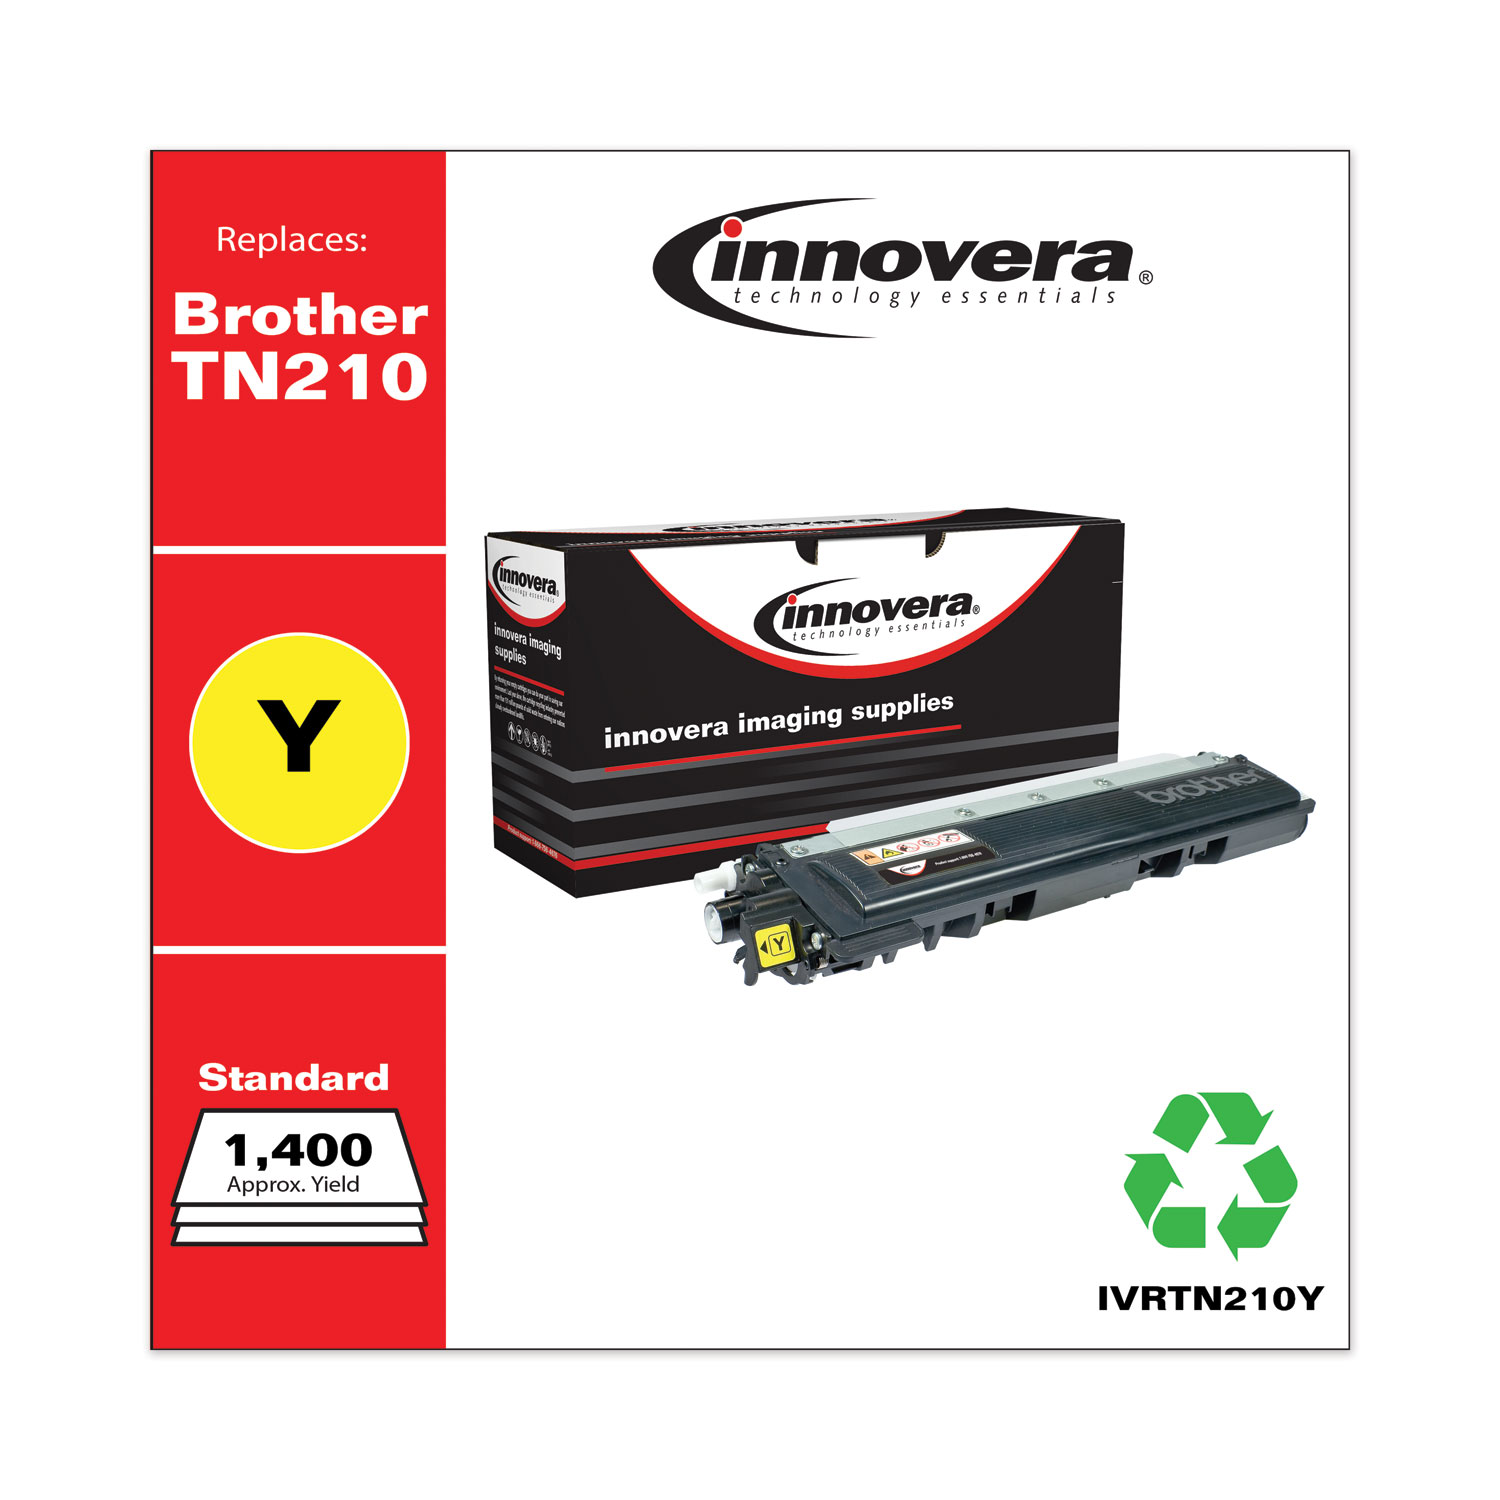 Remanufactured Yellow Toner, Replacement for Brother TN210Y, 1,400 Page-Yield IVRTN210Y